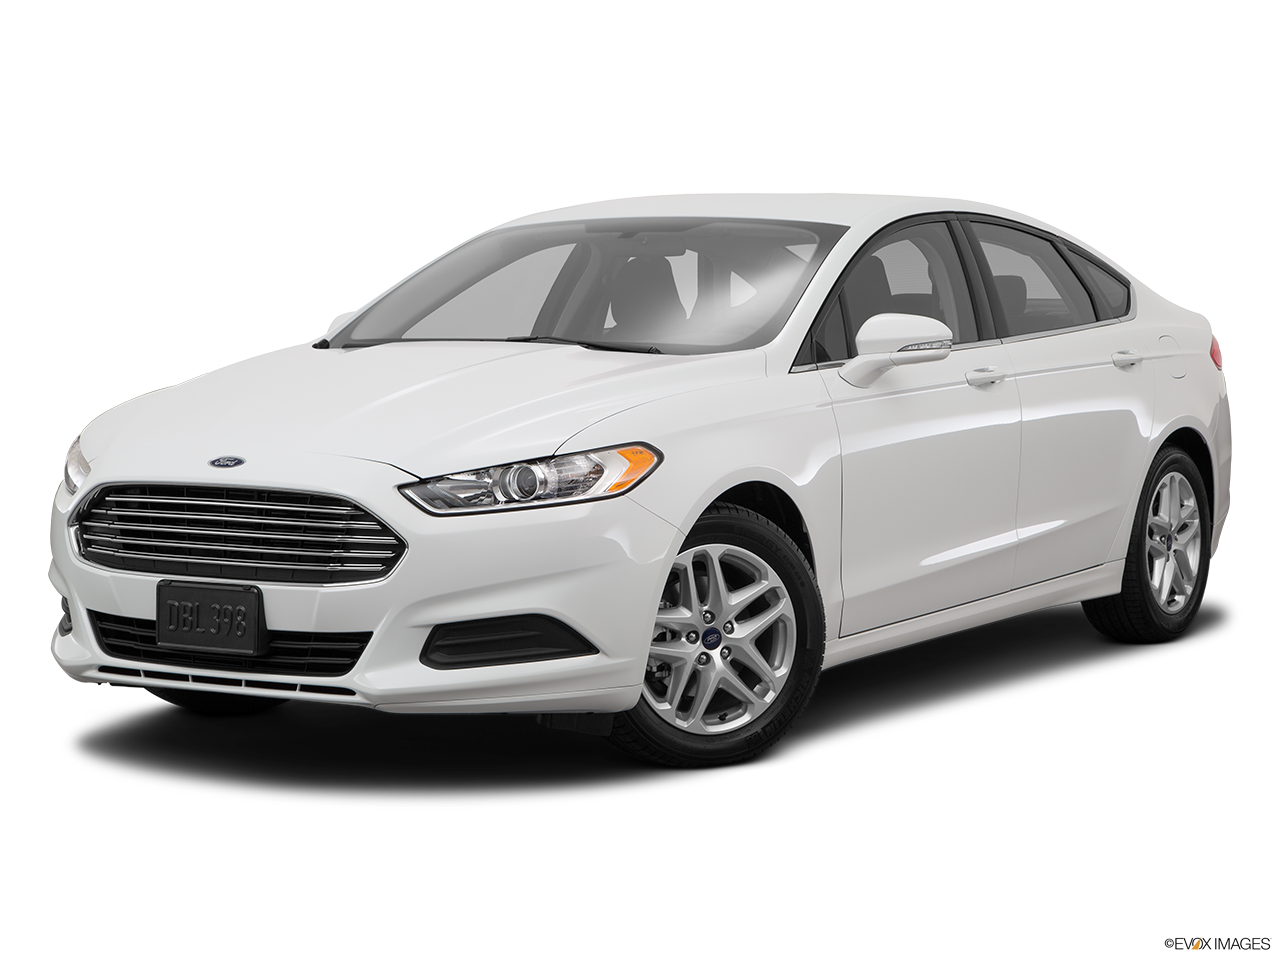 Test Drive A 2016 Ford Fusion at Franklin Ford in Franklin